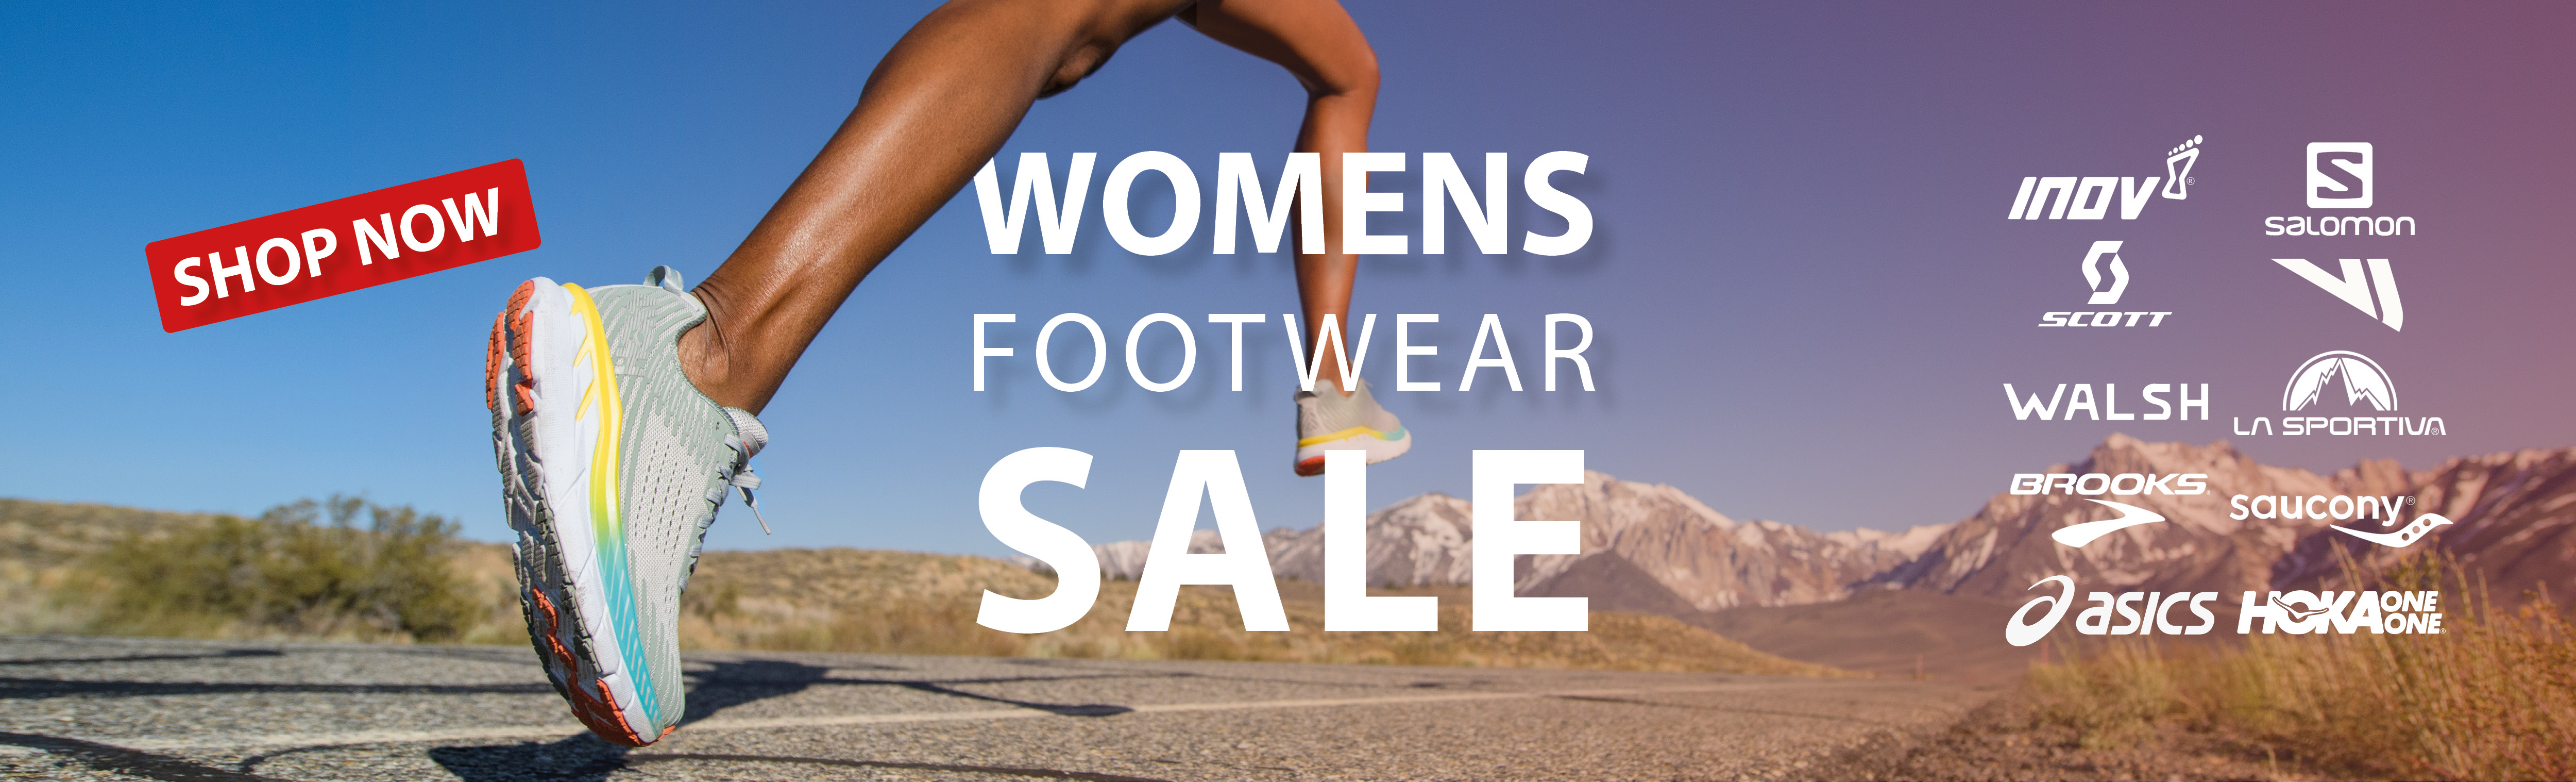 Women's running footwear up to 50% off most stock